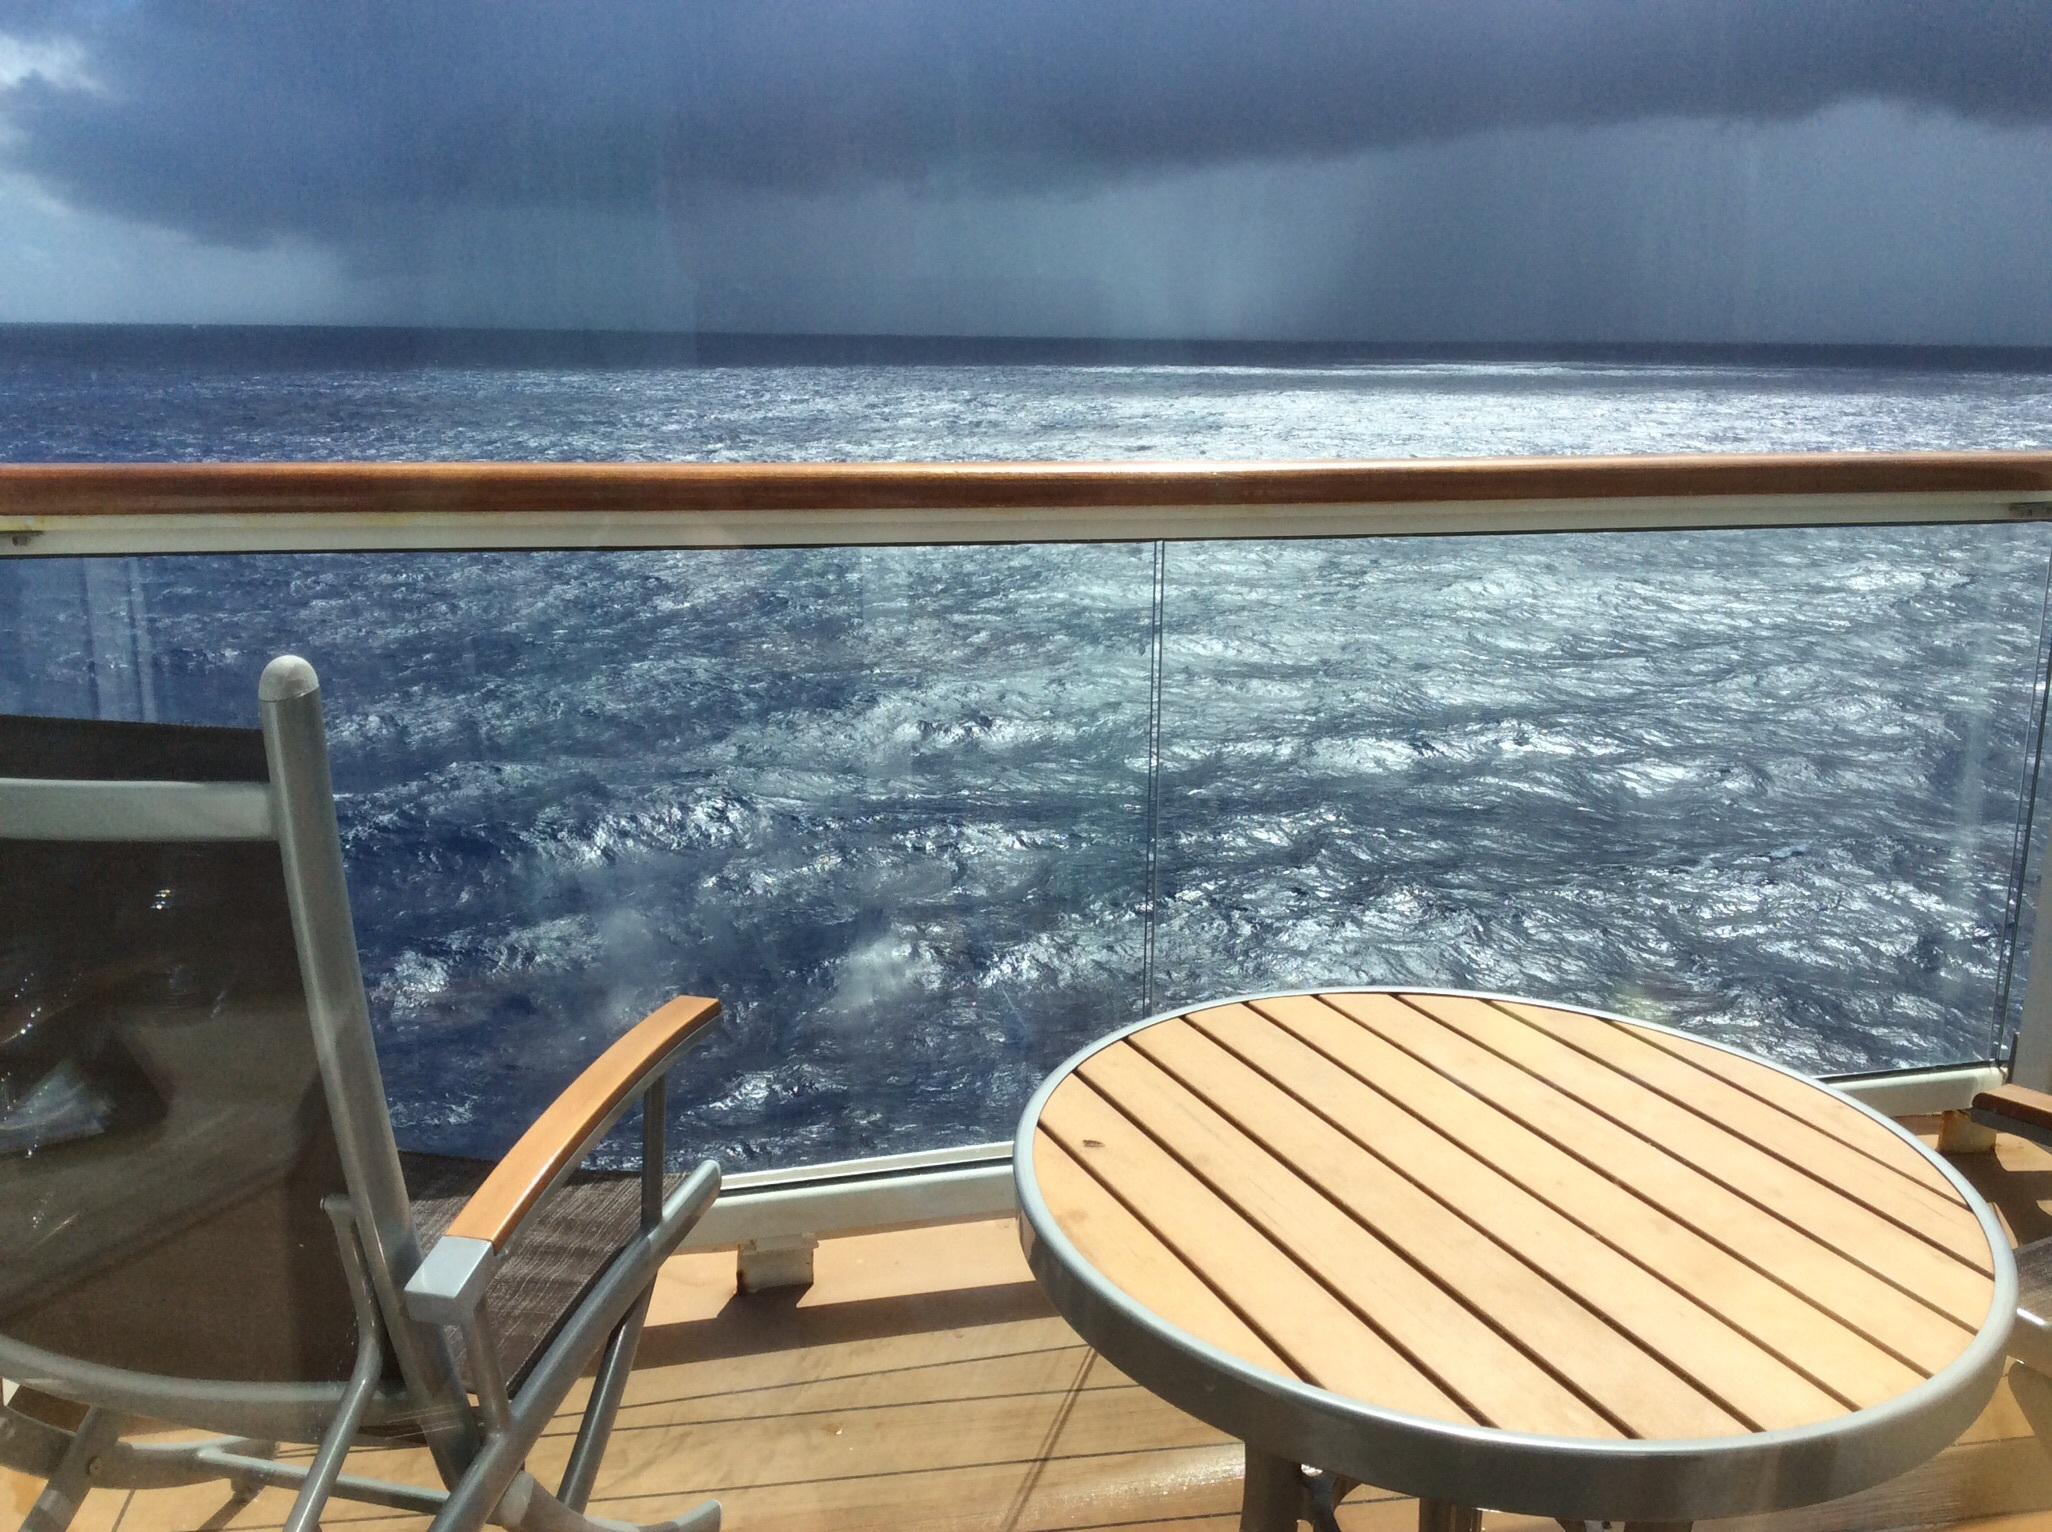 Celebrity summit cruise review jul 12 2015 expected for Cruise ship balcony view